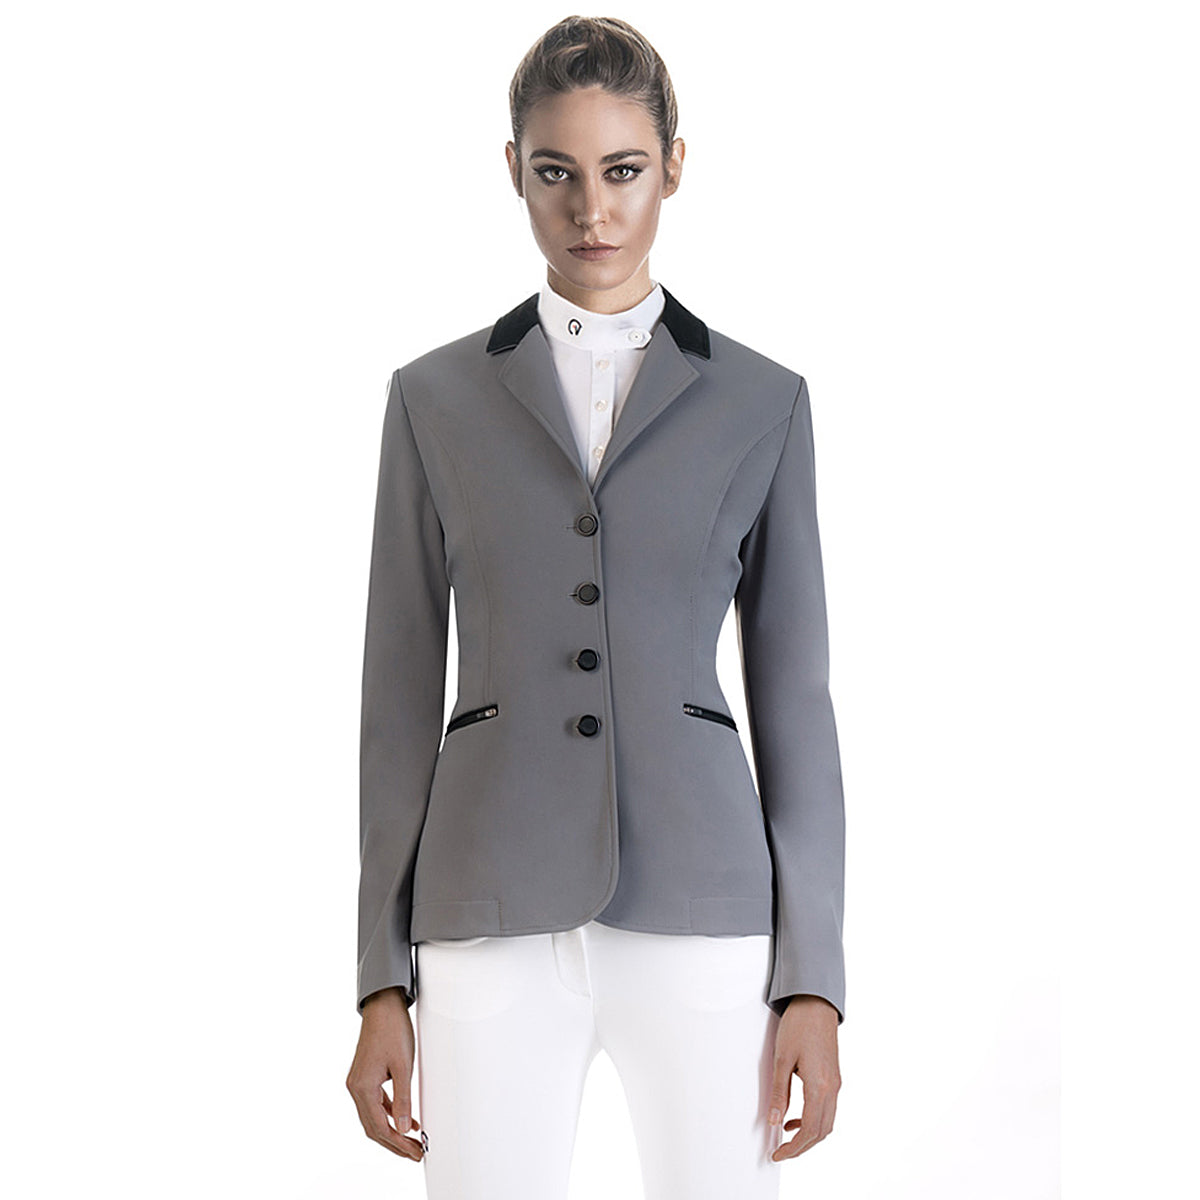 EGO7 Women's Performance One Show Jacket